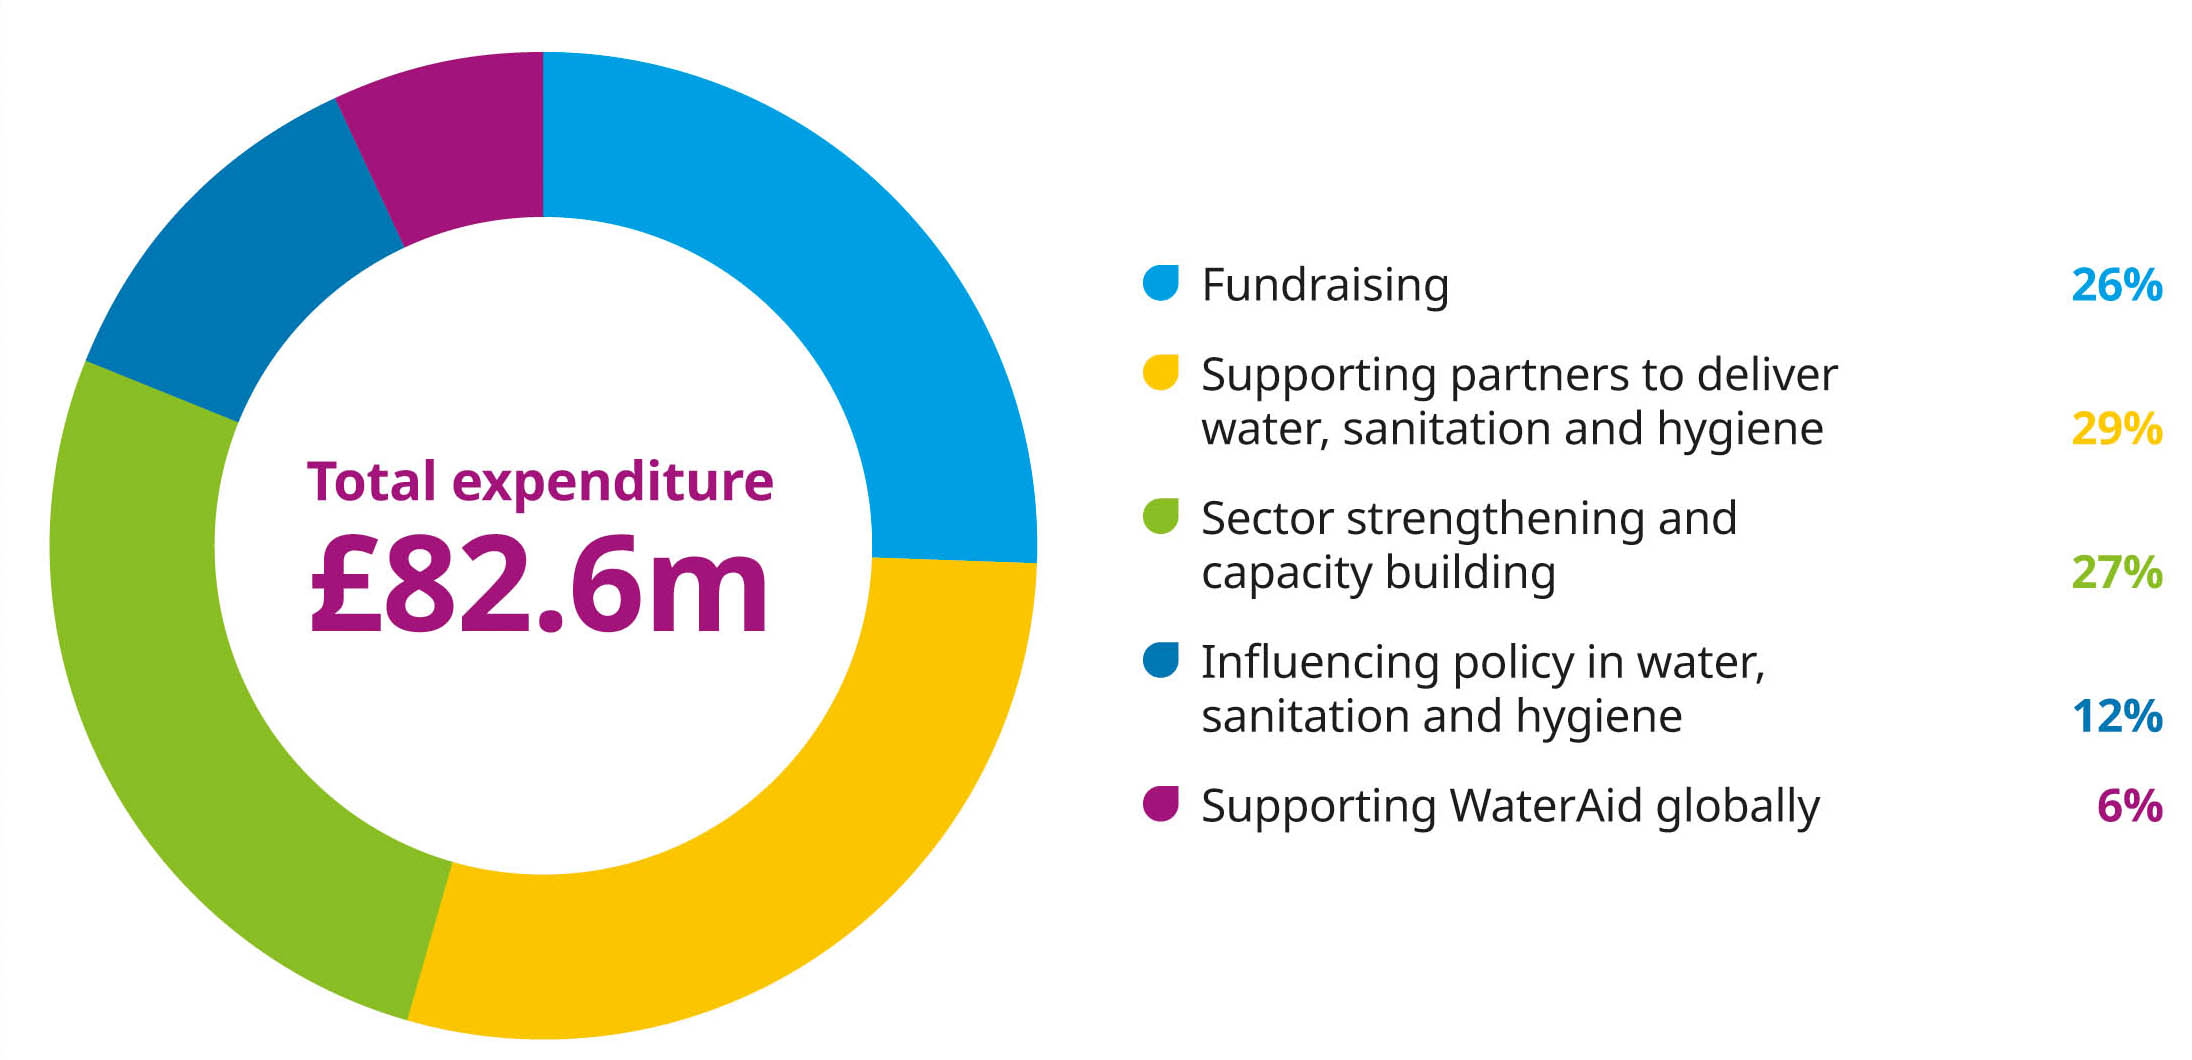 Graphic showing: Total expenditure was £82.6 million.  Of this:  26% was spent on fundraising activities 29% was spent on supporting partners to deliver water, sanitation and hygiene  27% was spent on sector strengthening and capacity building 12% went on influencing policy in water, sanitation and hygiene  6% went on supporting WaterAid globally